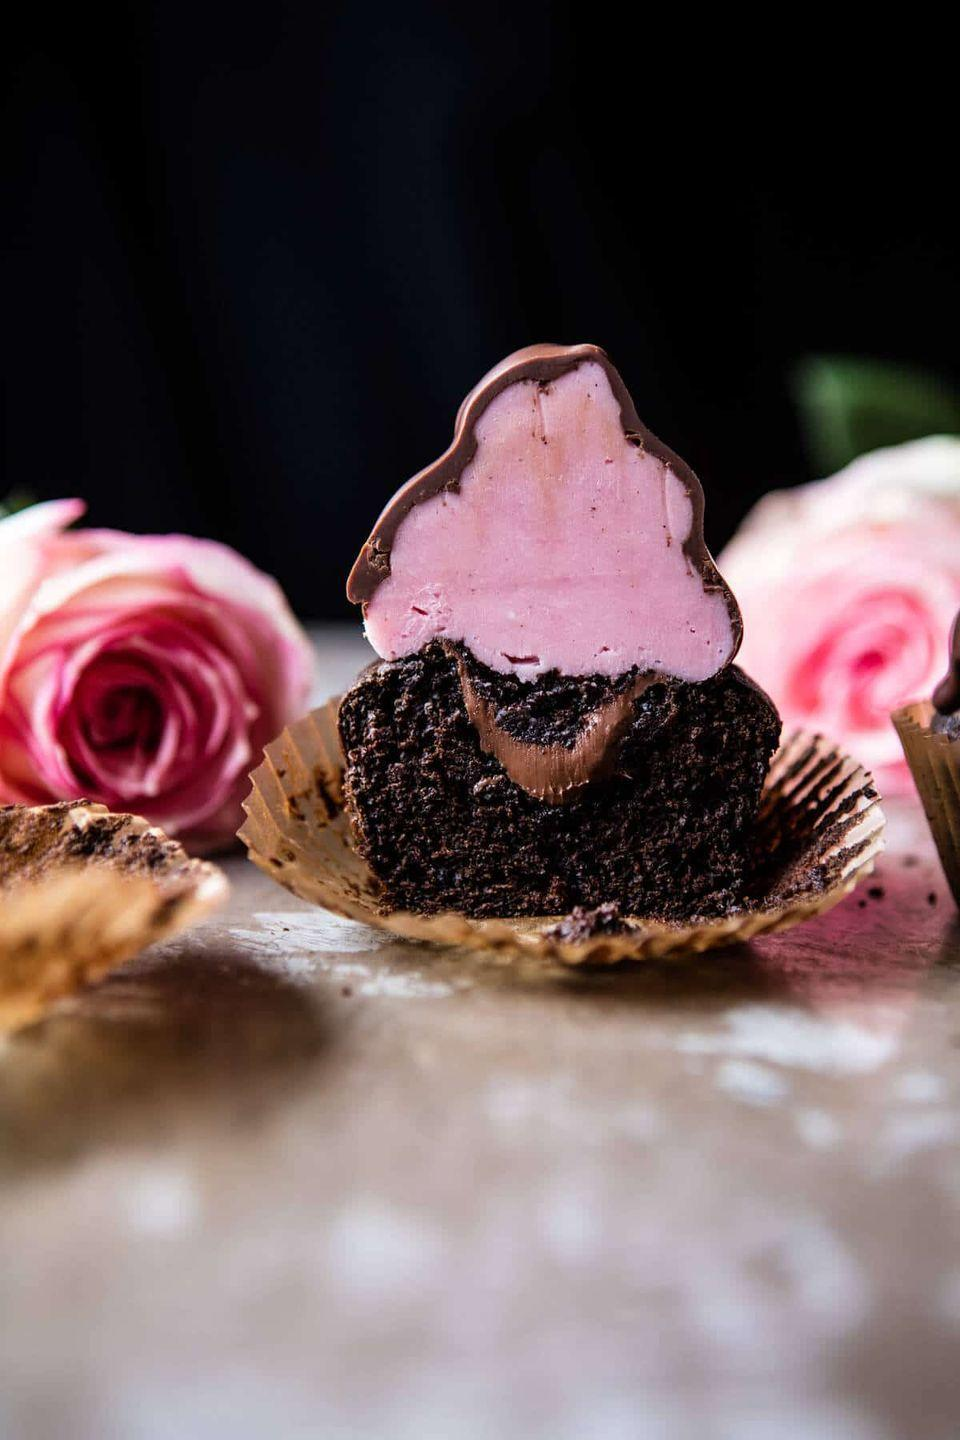 """<p>Vanilla buttercream is piped high on a chocolate cupcake and then covered in a chocolate candy coating. </p><p><strong>Get the recipe at <a href=""""https://www.halfbakedharvest.com/valentines-surprise-chocolate-high-hat-cupcakes/"""" rel=""""nofollow noopener"""" target=""""_blank"""" data-ylk=""""slk:Half Baked Harvest"""" class=""""link rapid-noclick-resp"""">Half Baked Harvest</a>.</strong></p><p><strong><a class=""""link rapid-noclick-resp"""" href=""""https://go.redirectingat.com?id=74968X1596630&url=https%3A%2F%2Fwww.walmart.com%2Fsearch%2F%3Fquery%3Dcupcake%2Bstand&sref=https%3A%2F%2Fwww.thepioneerwoman.com%2Ffood-cooking%2Fmeals-menus%2Fg35139389%2Fvalentines-day-cupcake-ideas%2F"""" rel=""""nofollow noopener"""" target=""""_blank"""" data-ylk=""""slk:SHOP CUPCAKE STANDS"""">SHOP CUPCAKE STANDS</a><br></strong></p>"""